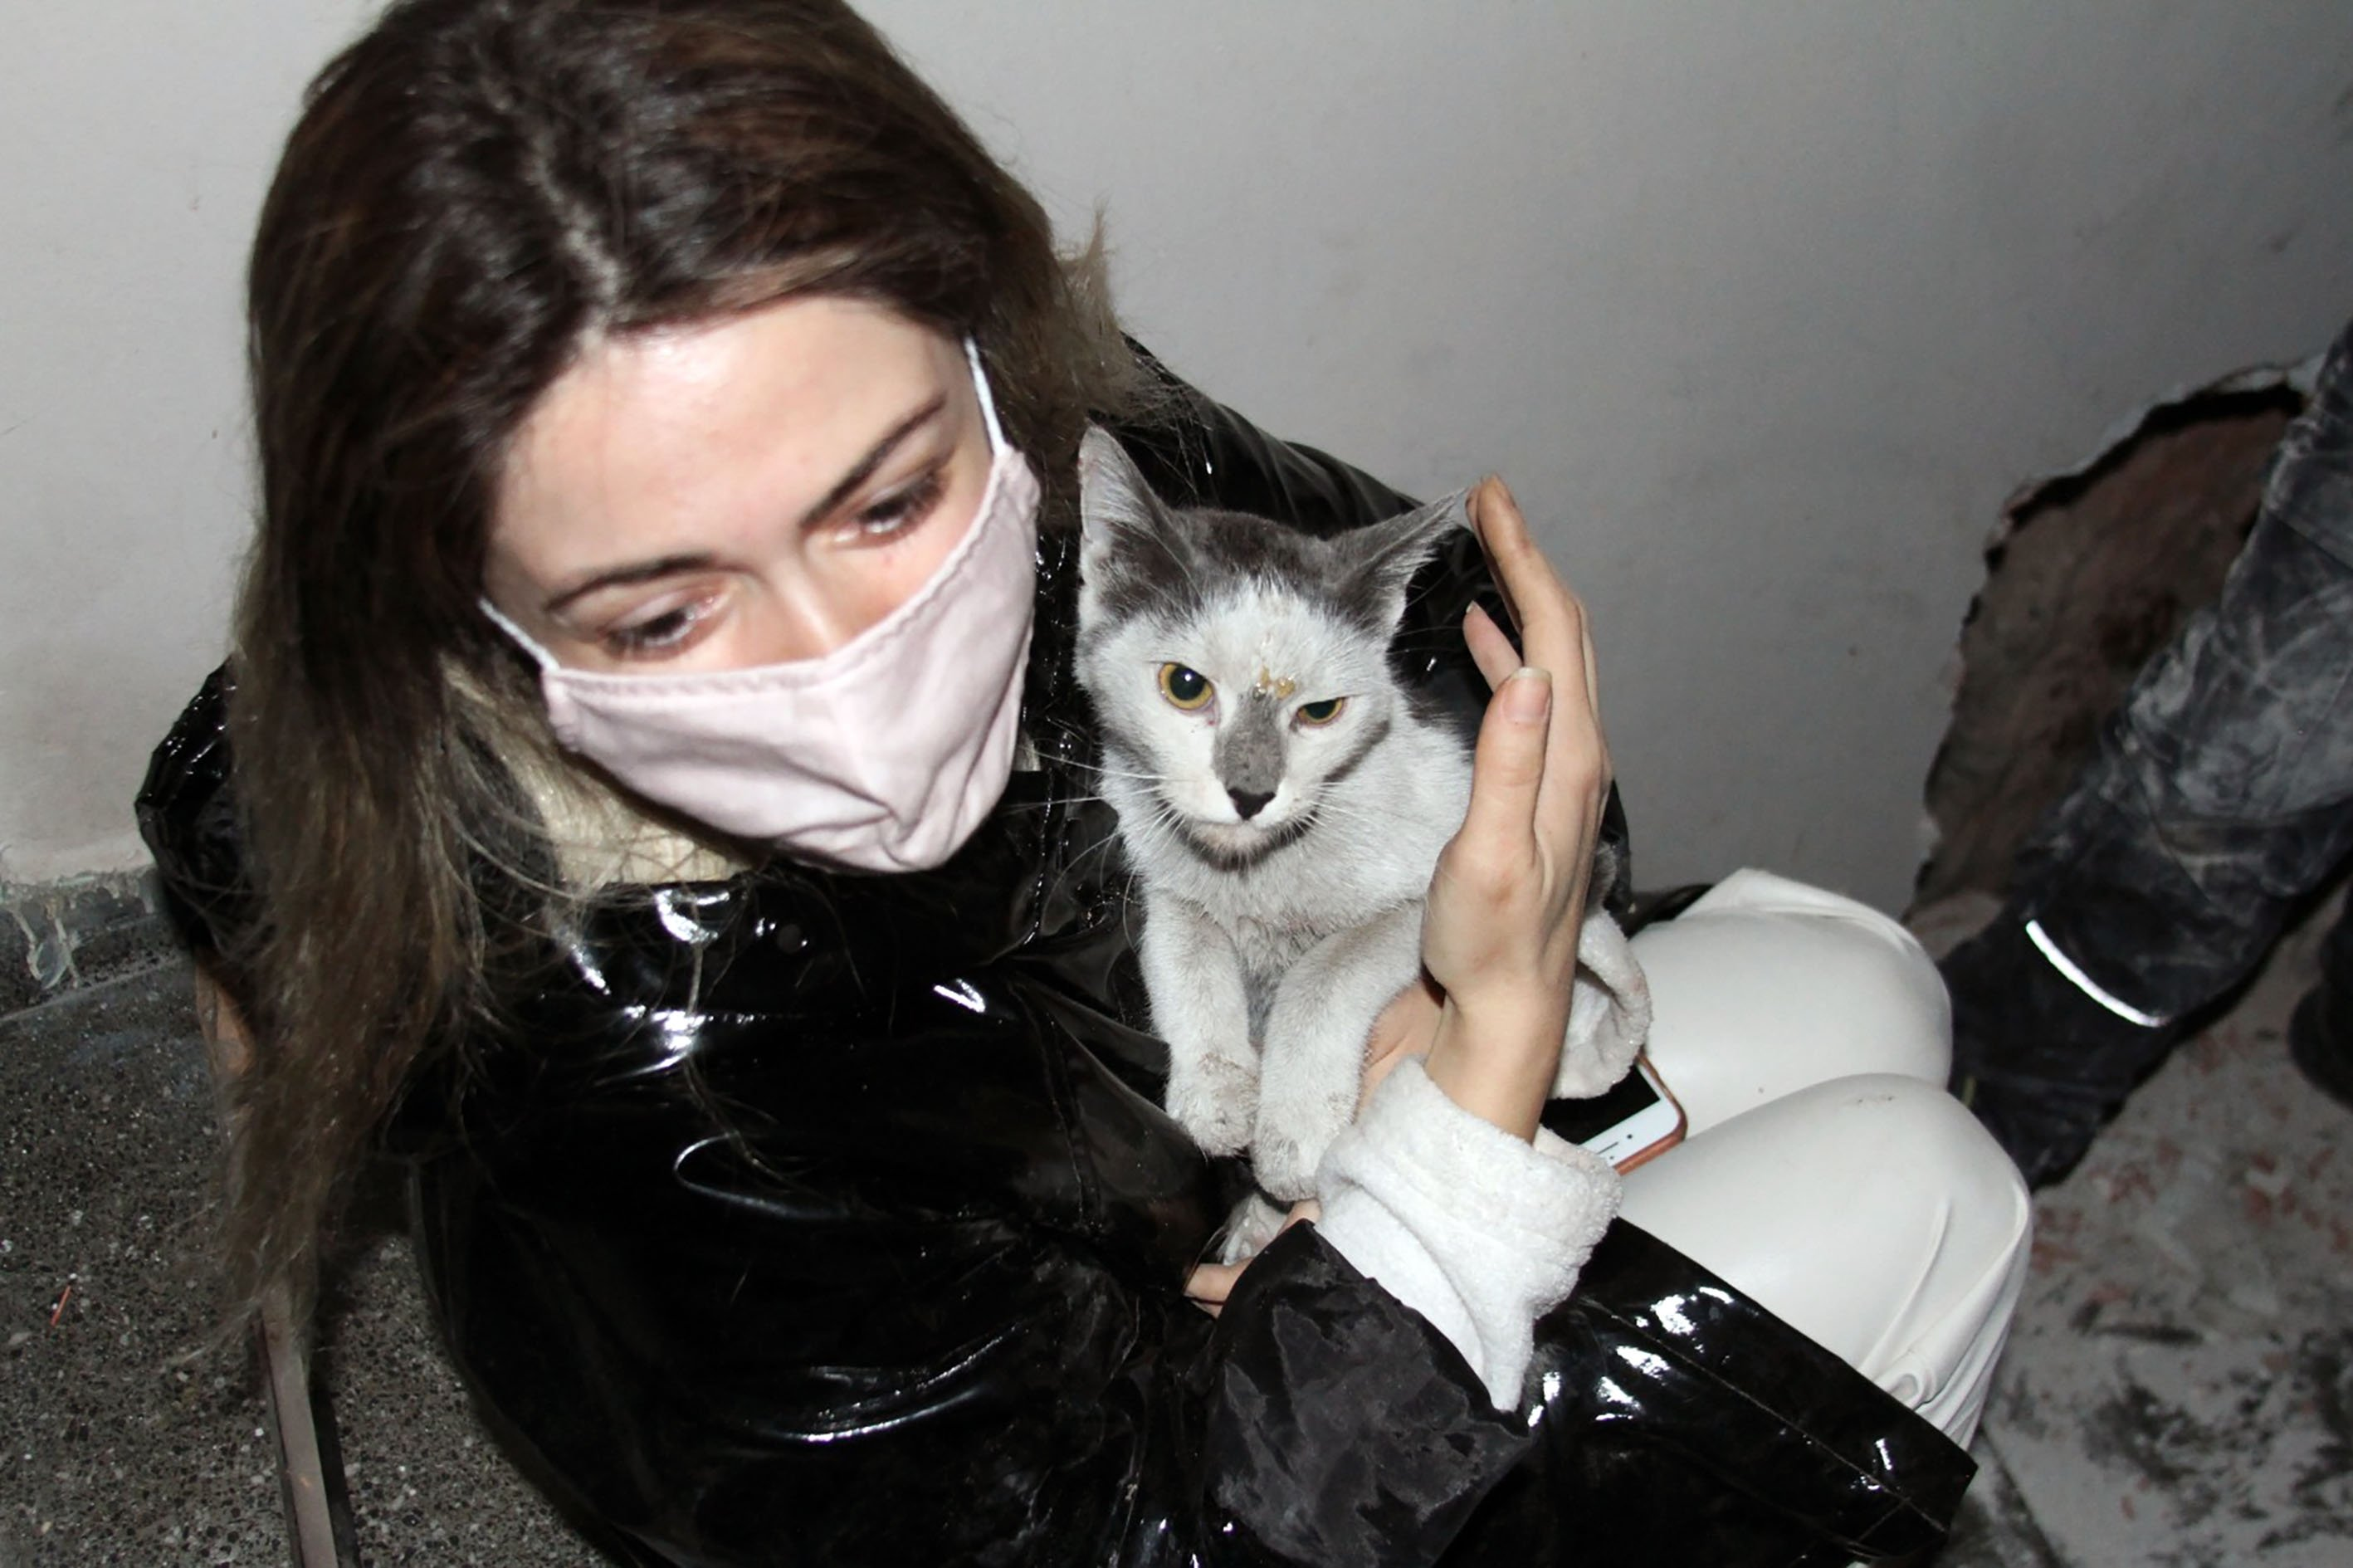 Cat who survived Izmir earthquake reunites with owner after miraculous rescue